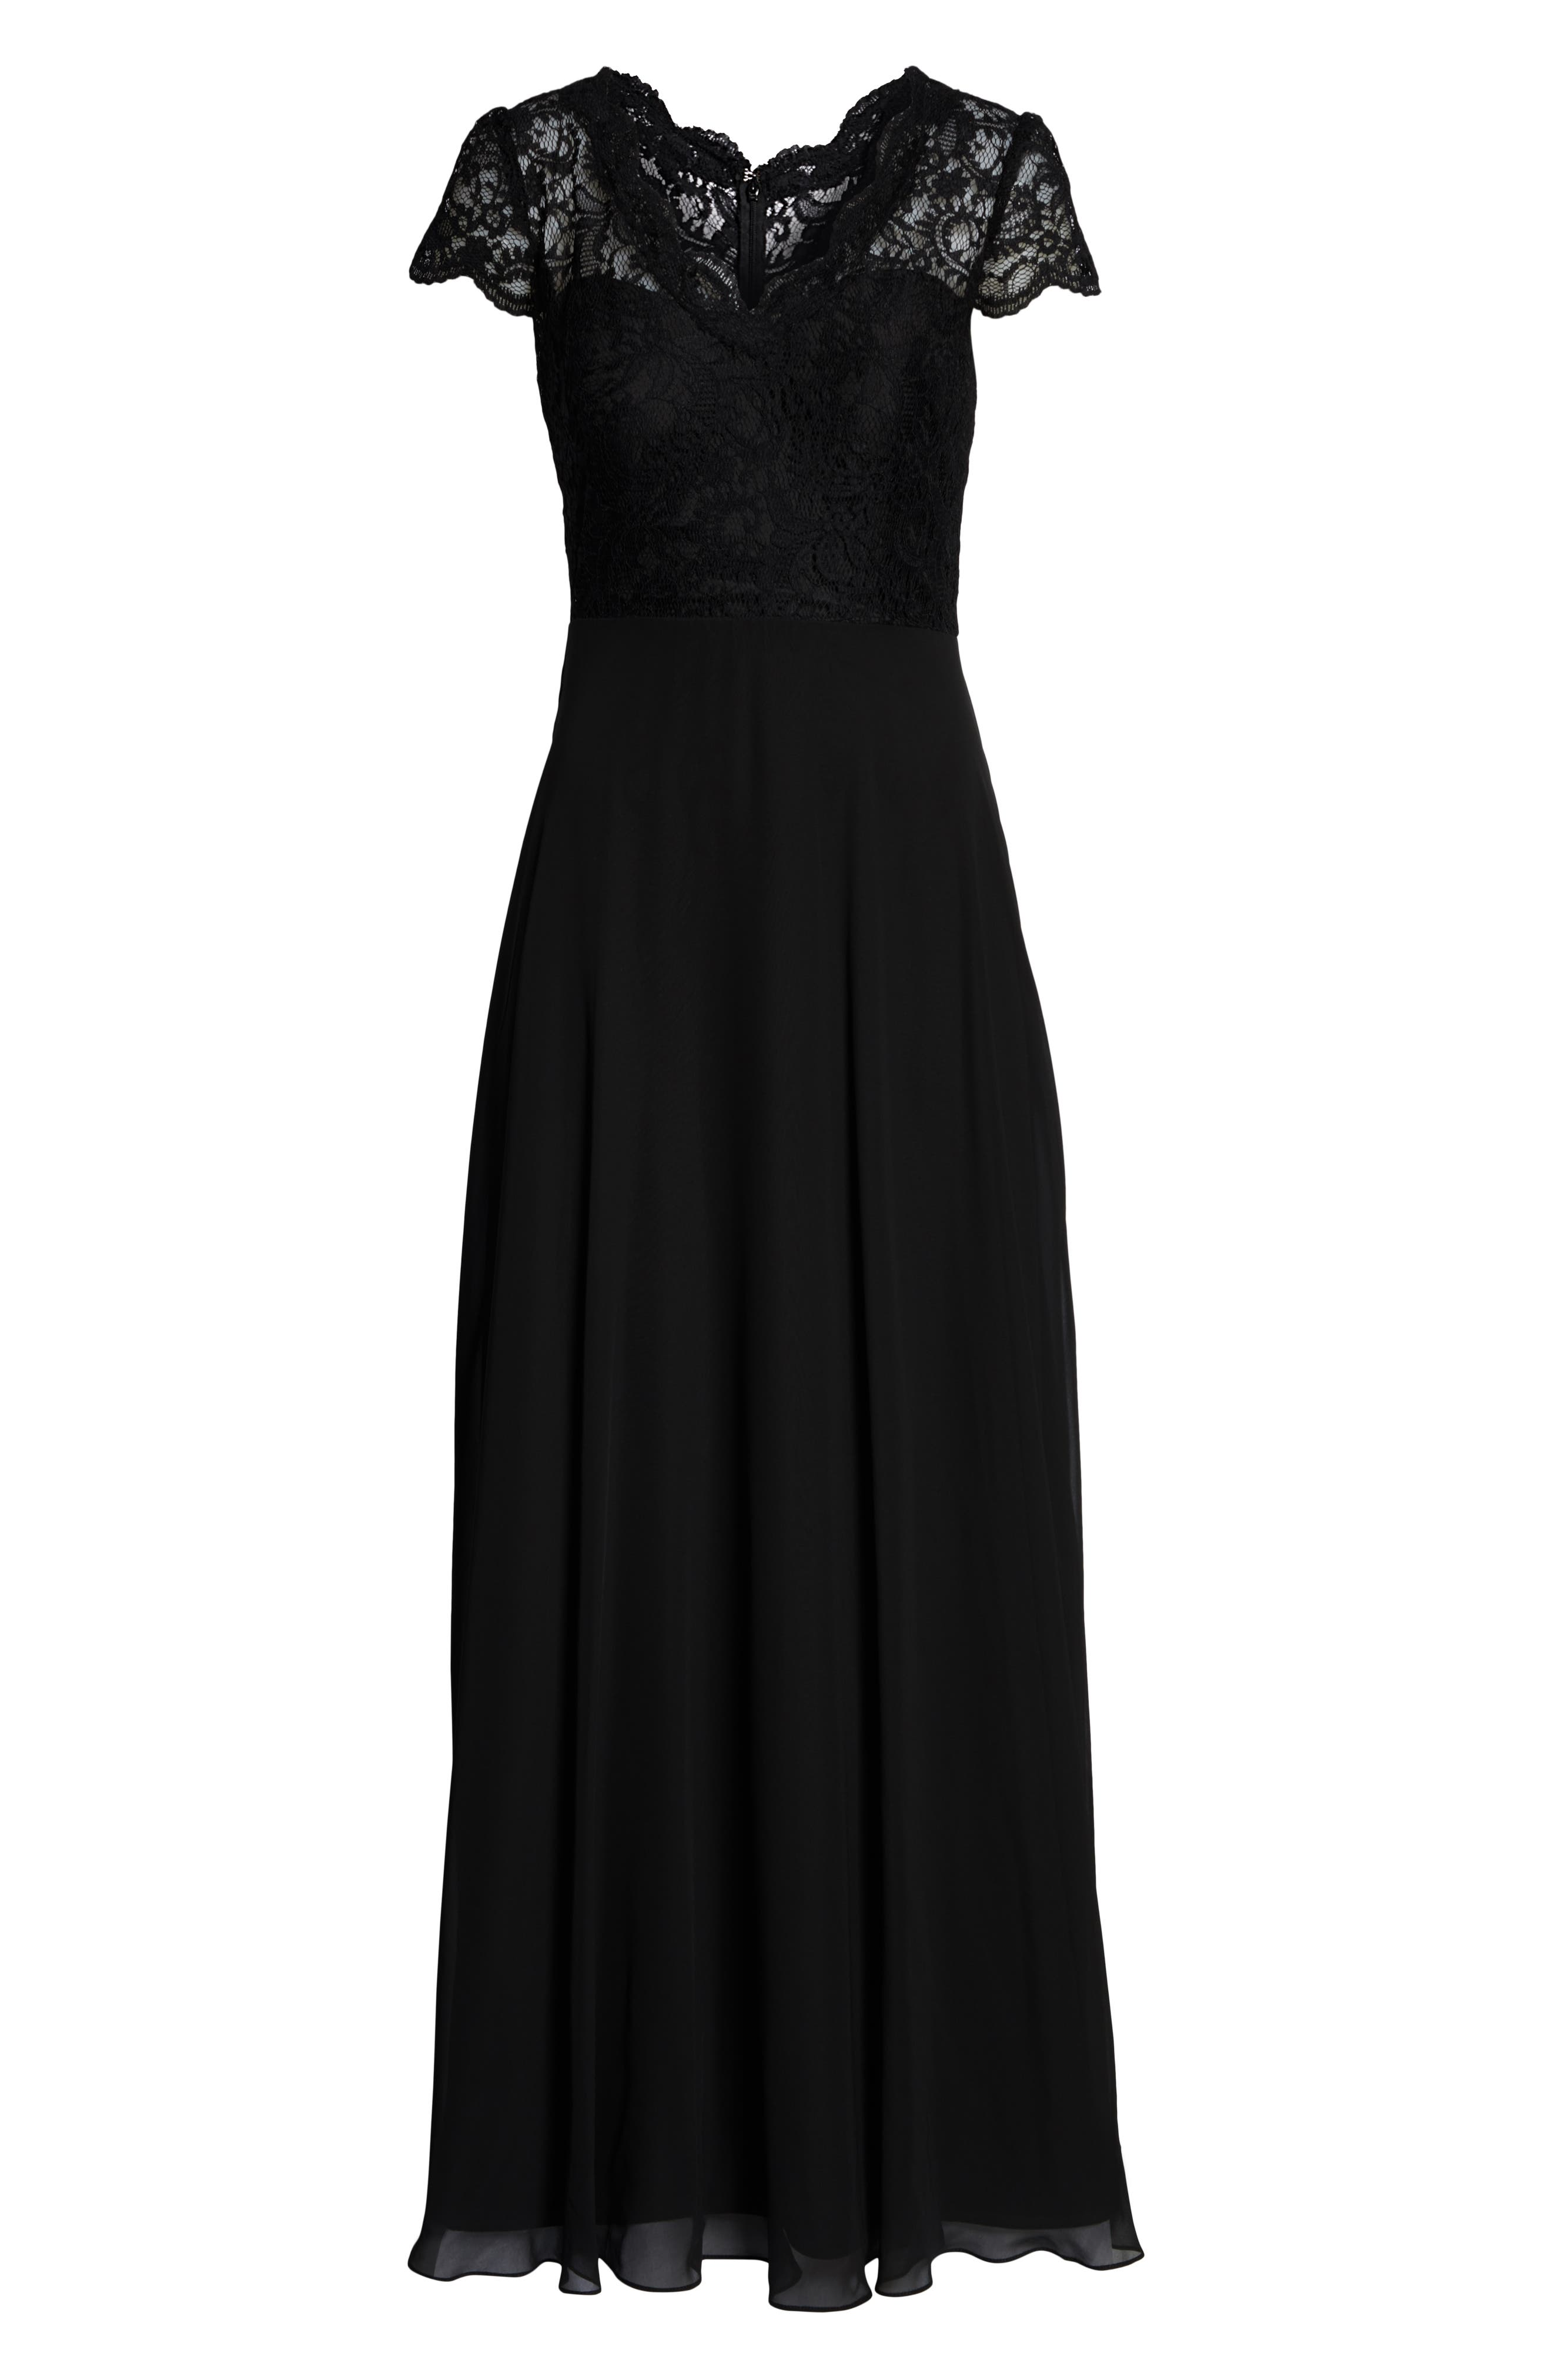 DESSY COLLECTION, Cap Sleeve Lace & Chiffon Gown, Alternate thumbnail 3, color, BLACK